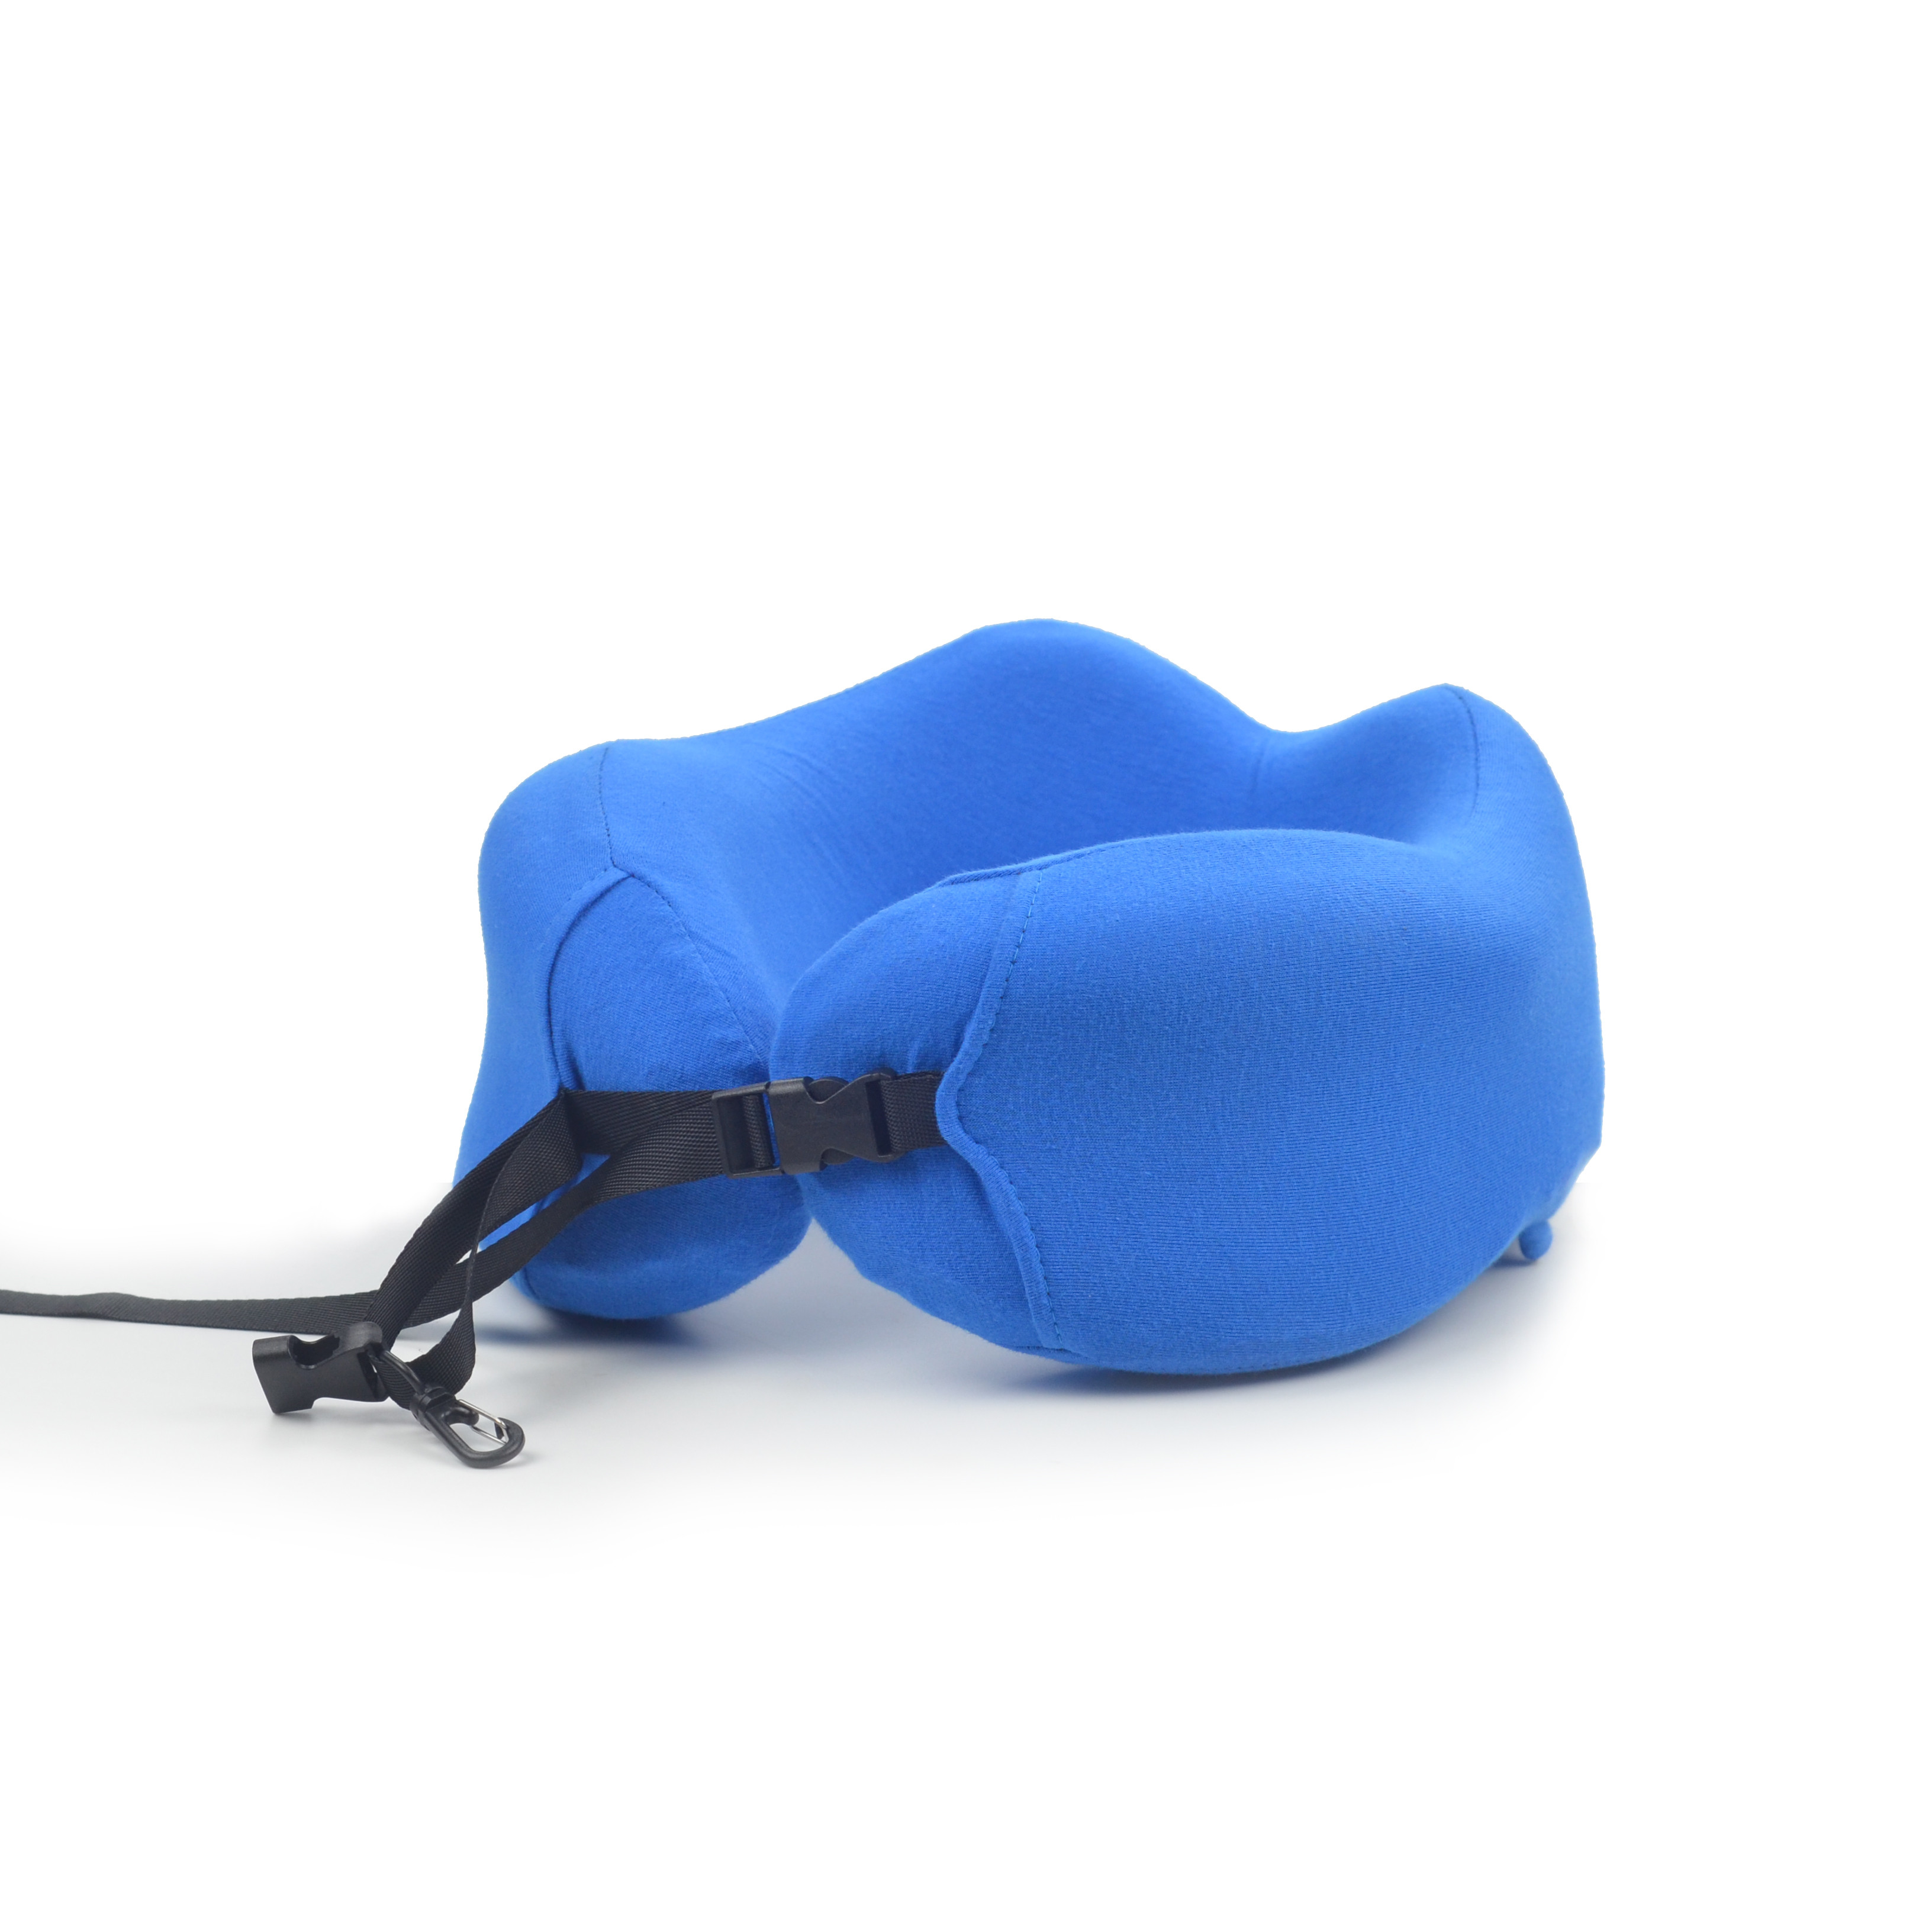 Blue solid color custom travel pillow foldable travel neck pillow